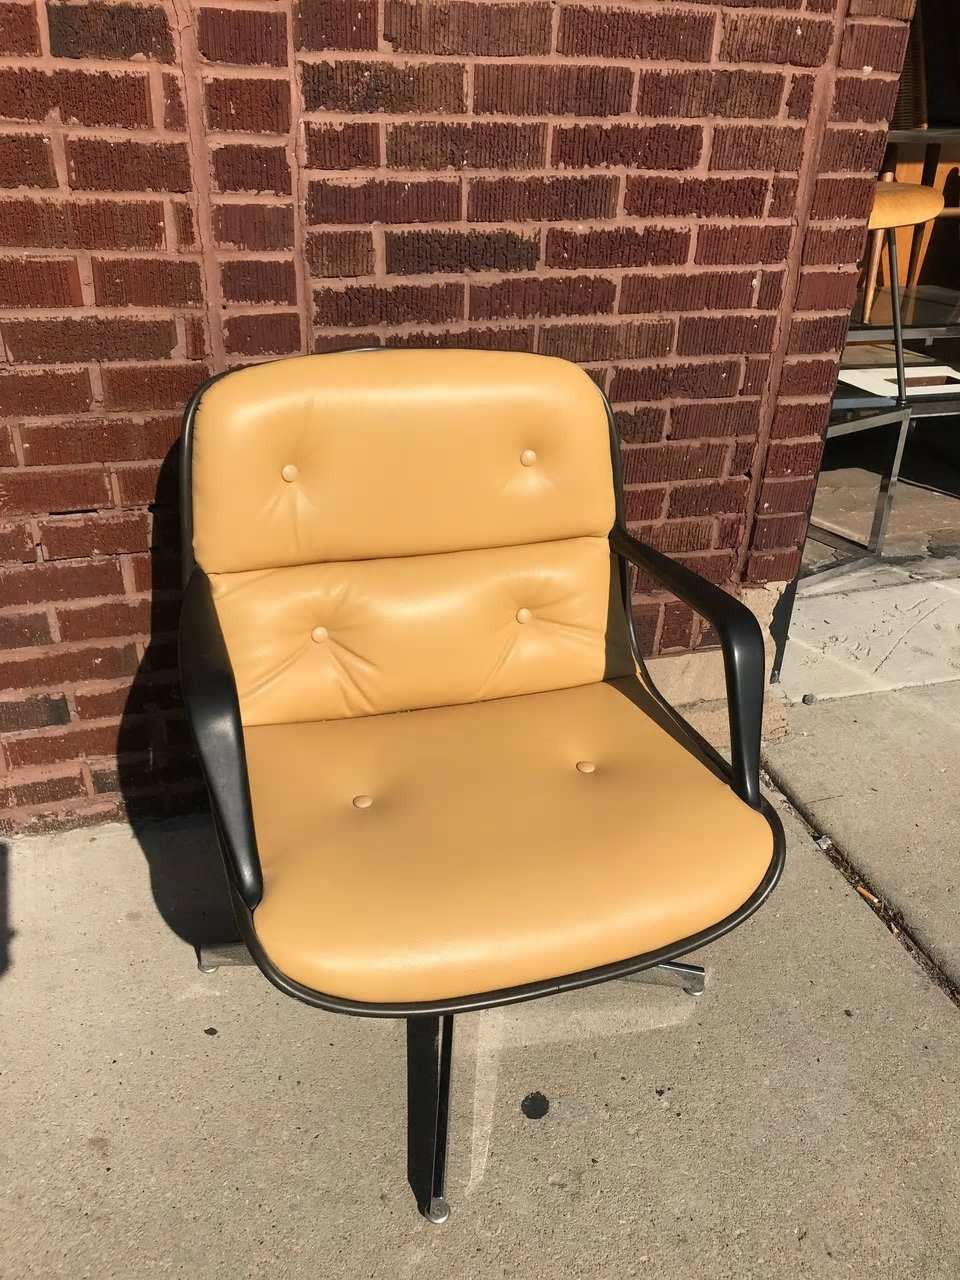 Brilliant Vintage Mid Century Modern Steelcase Tan Leather Swivel Office Chair Newly Upholstered Caraccident5 Cool Chair Designs And Ideas Caraccident5Info